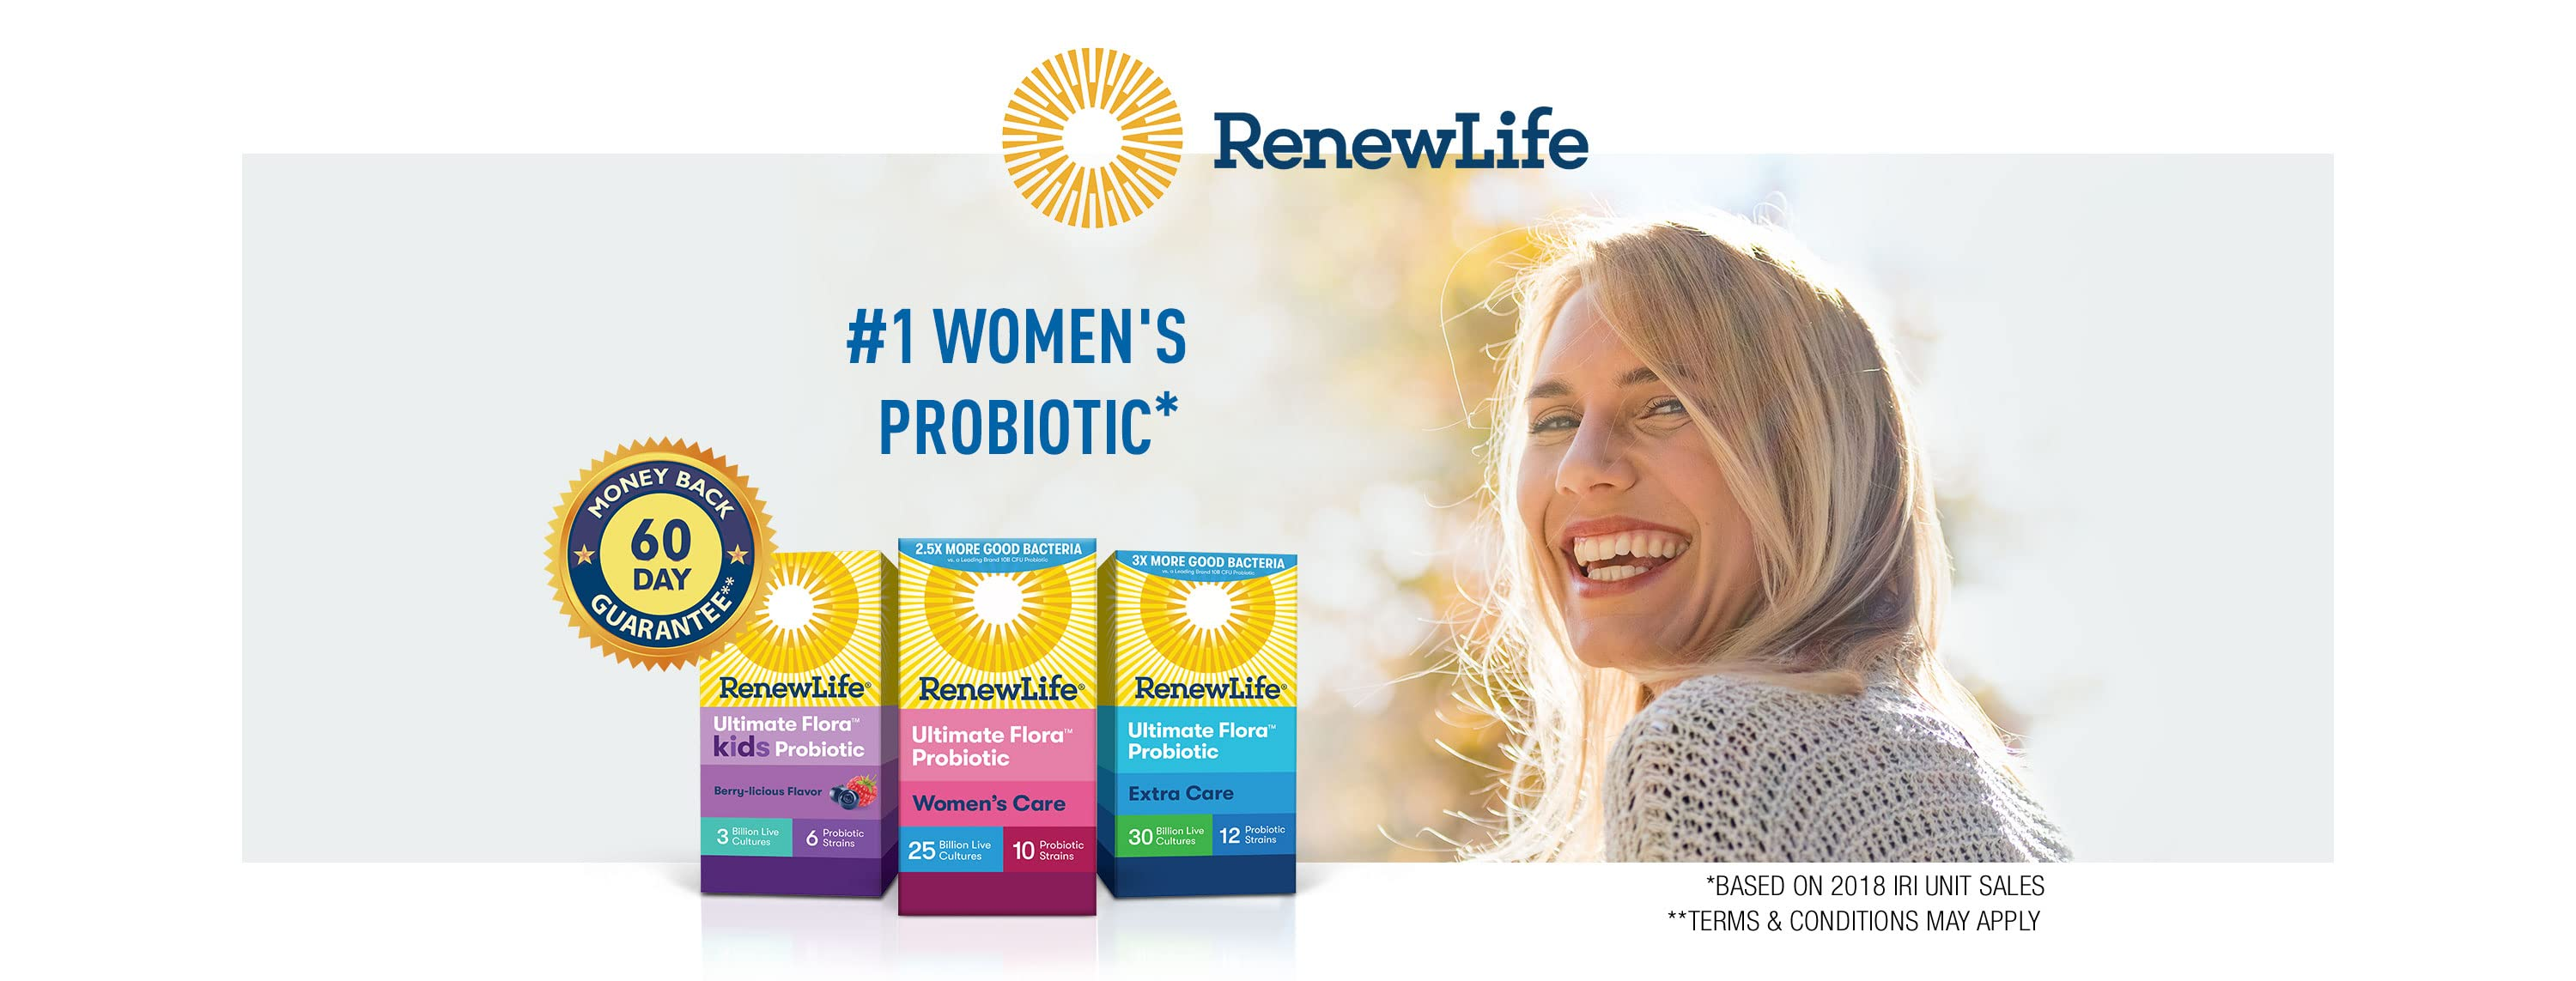 Renew Life. #1 Women's Probiotic. Based on the 2018 IRI Unit Sales and the 2018ConsumerLab.comSurvey 60 day money back guarantee. Terms and conditions may apply